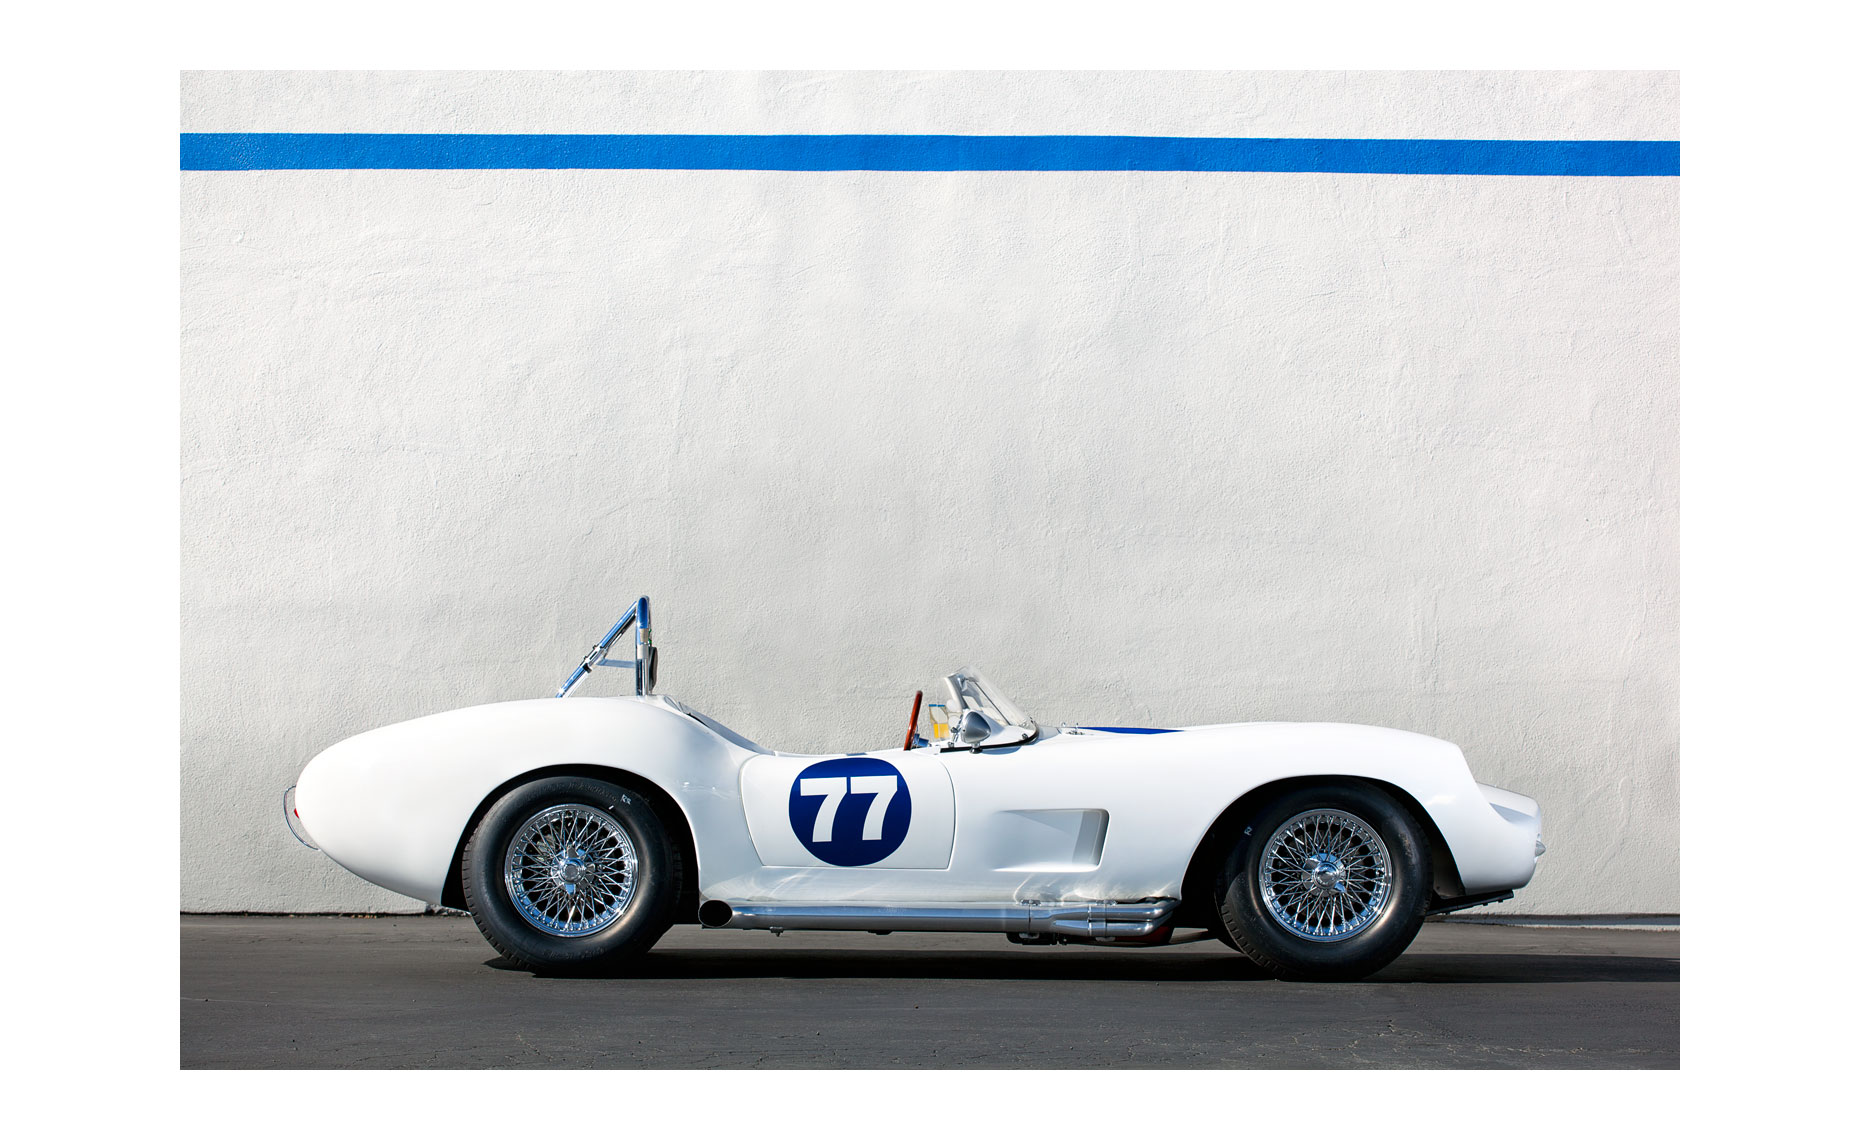 1959 Devin SS Sports Racing Car